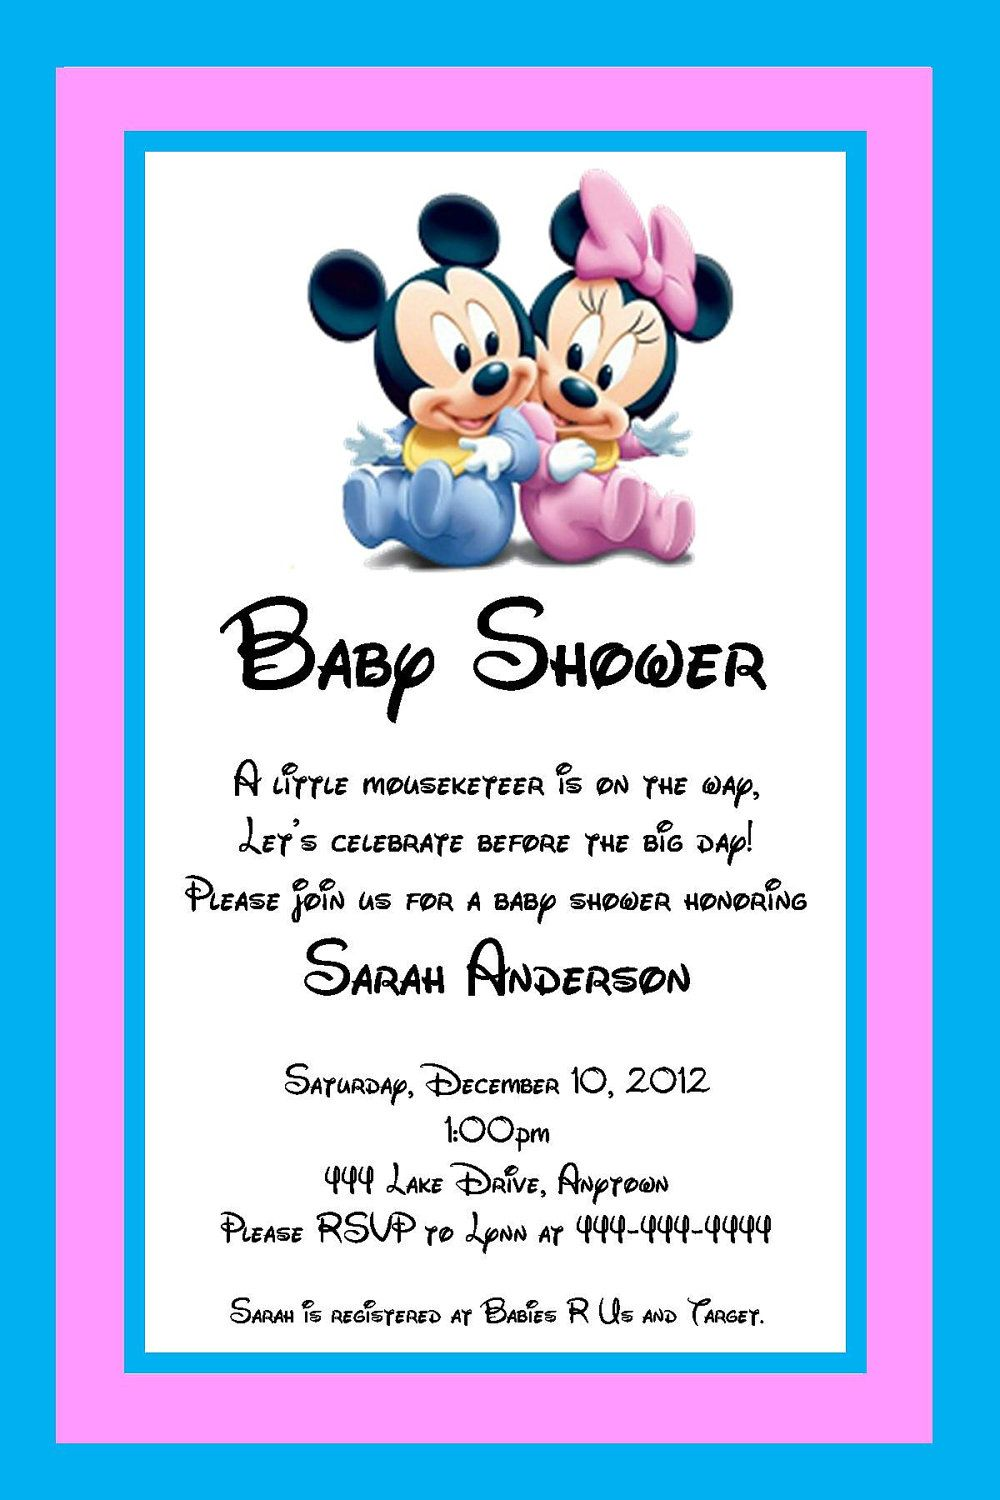 Baby Mickey And Minnie Mouse Shower Invitation Great For Twins Or Unknown Gender You Print 7 00 Via Etsy